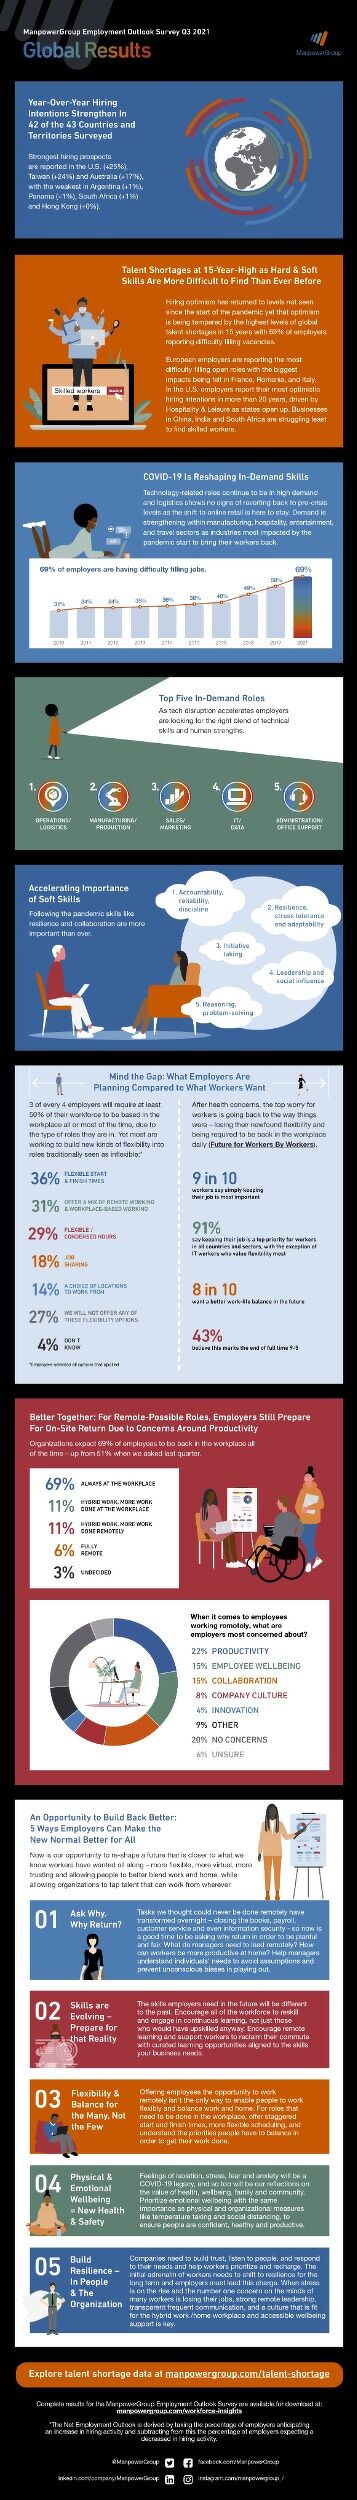 Q3 2021 Employment Outlook Infographic